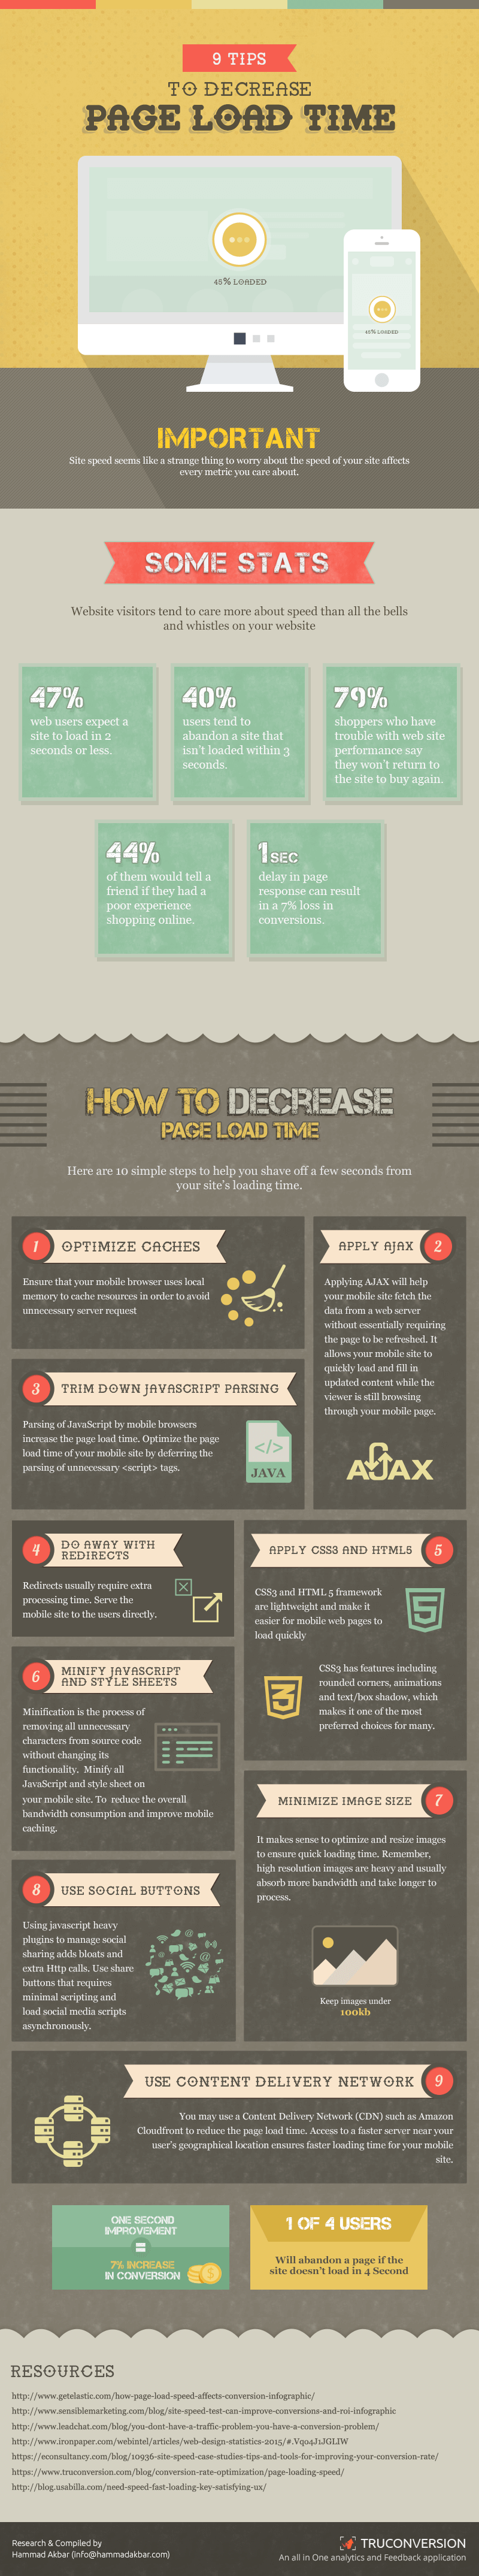 Improve-Page-Load-Time